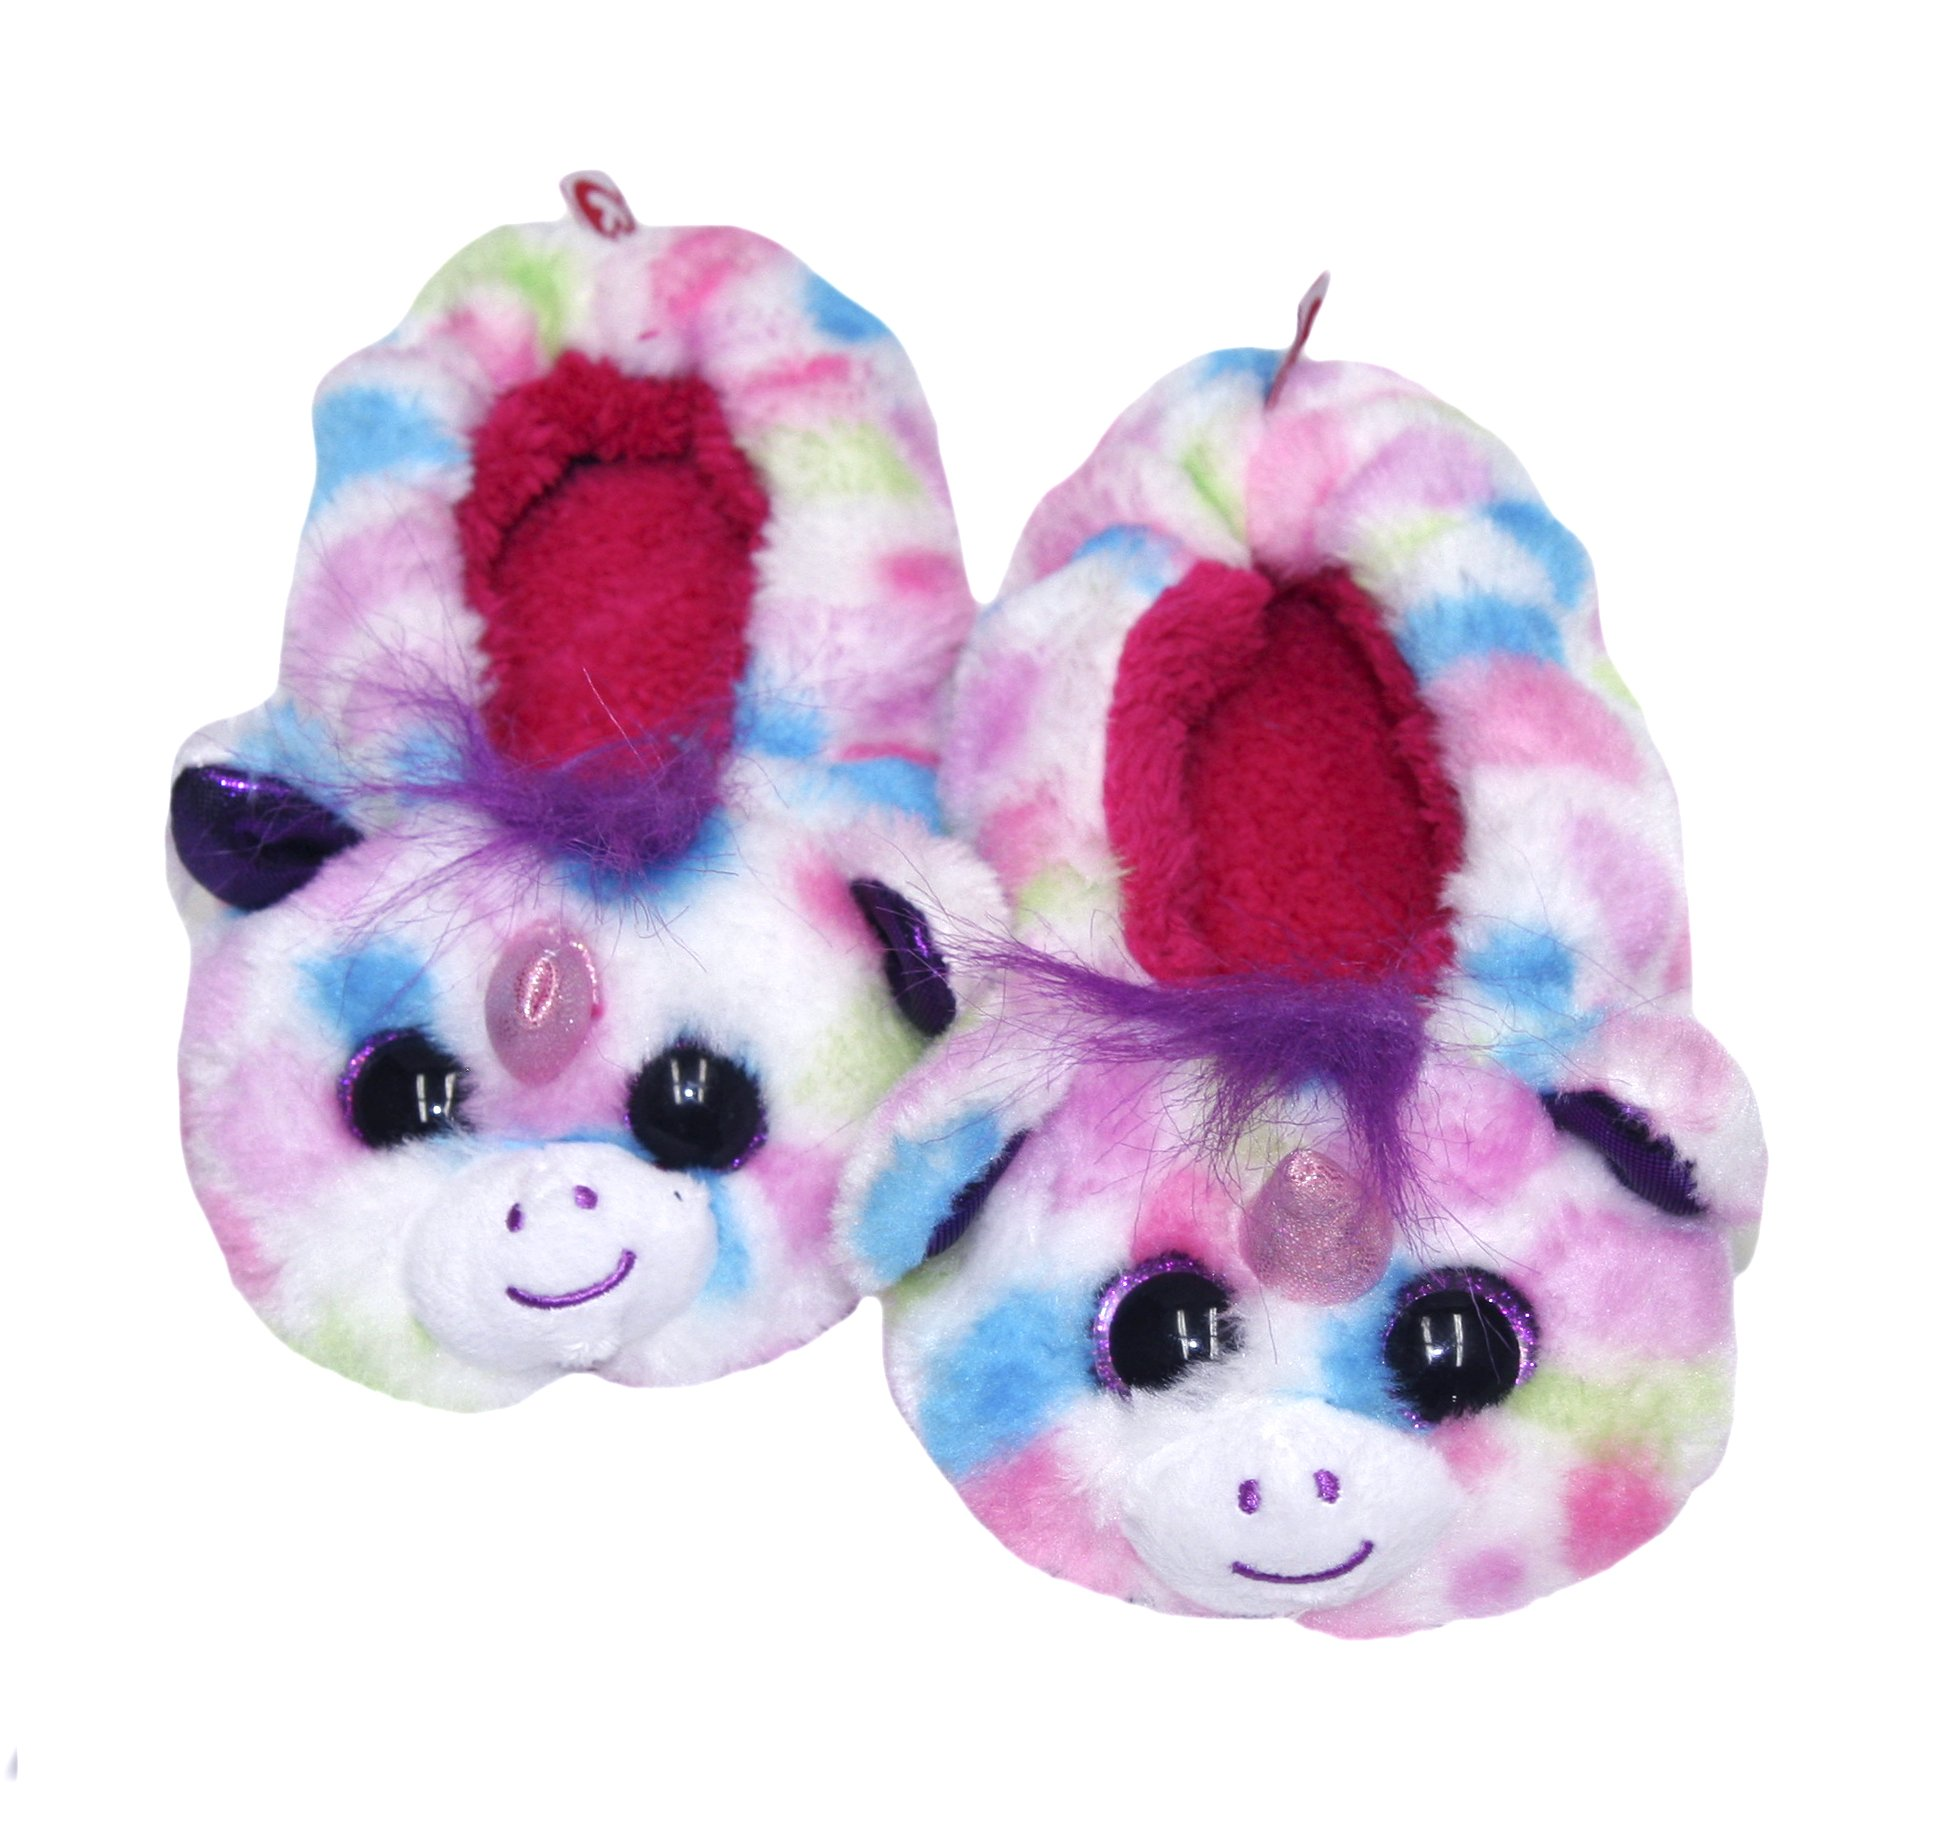 TY Beanie Boos Kids Girls Plush Animal Toy Non Skid Slipper Socks (See More Designs, Colors, and Sizes) (Medium, Wishful Unicorn)